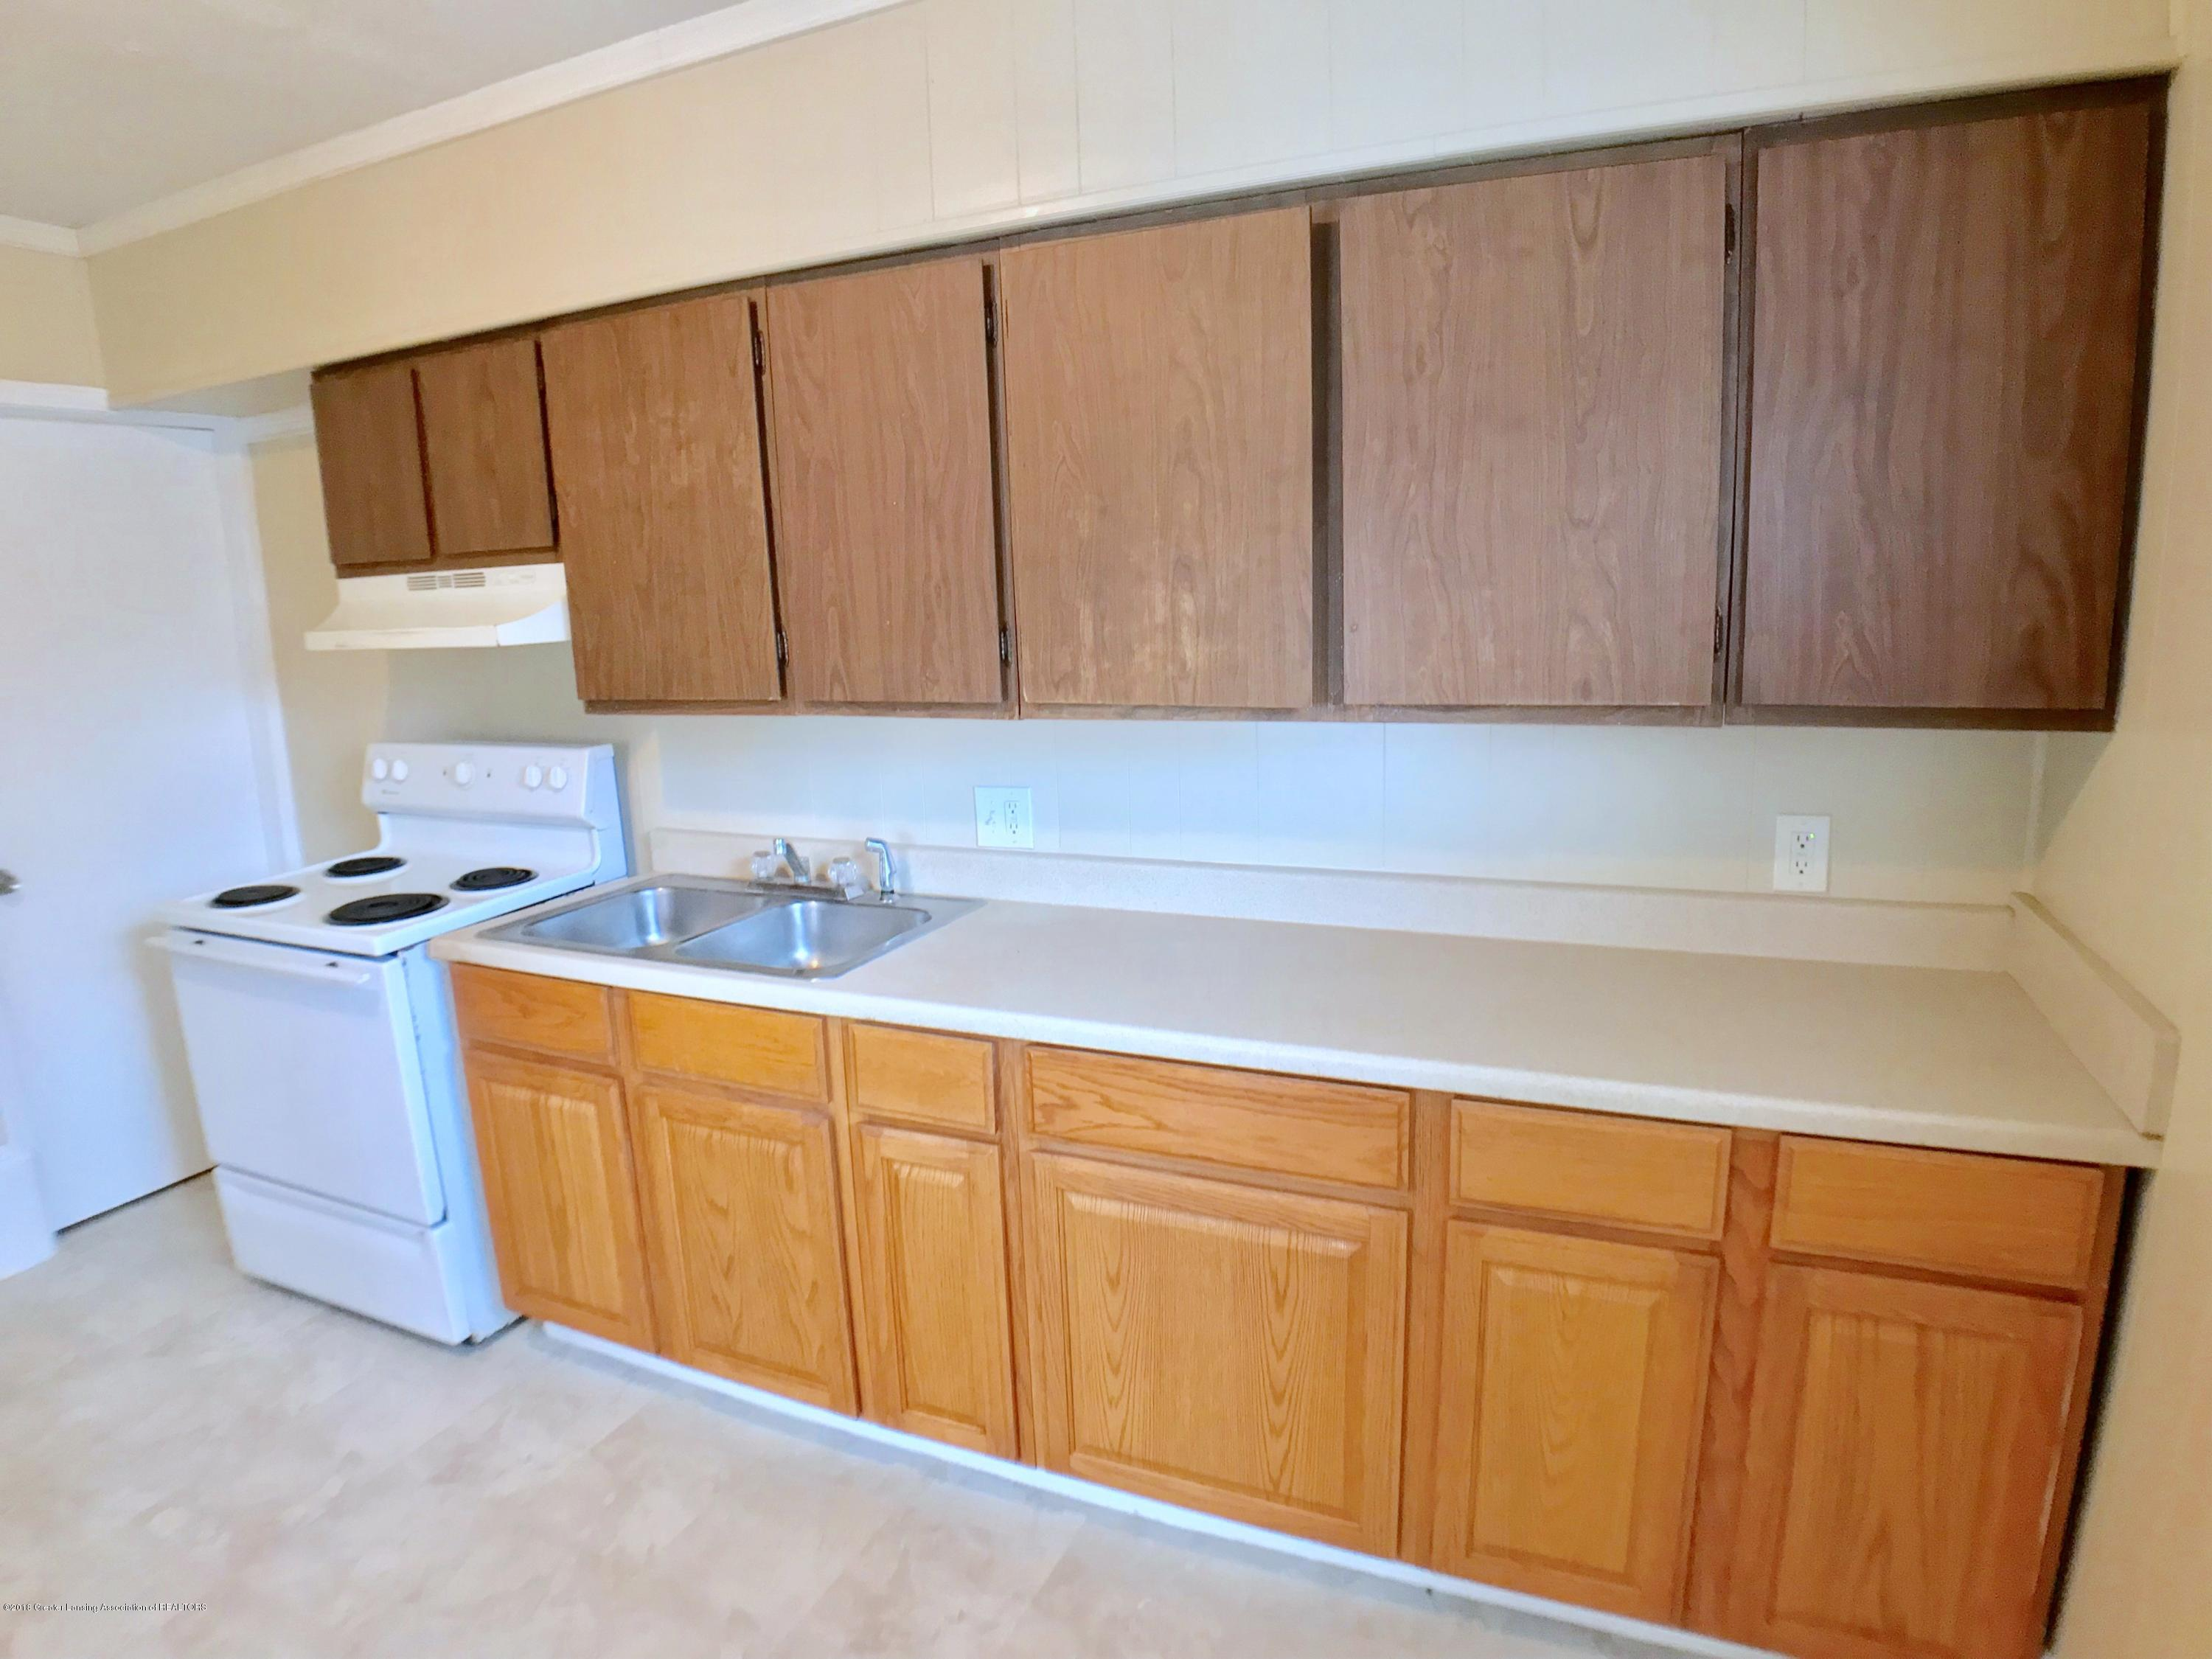 714 N Pine St - Kitchen - 10